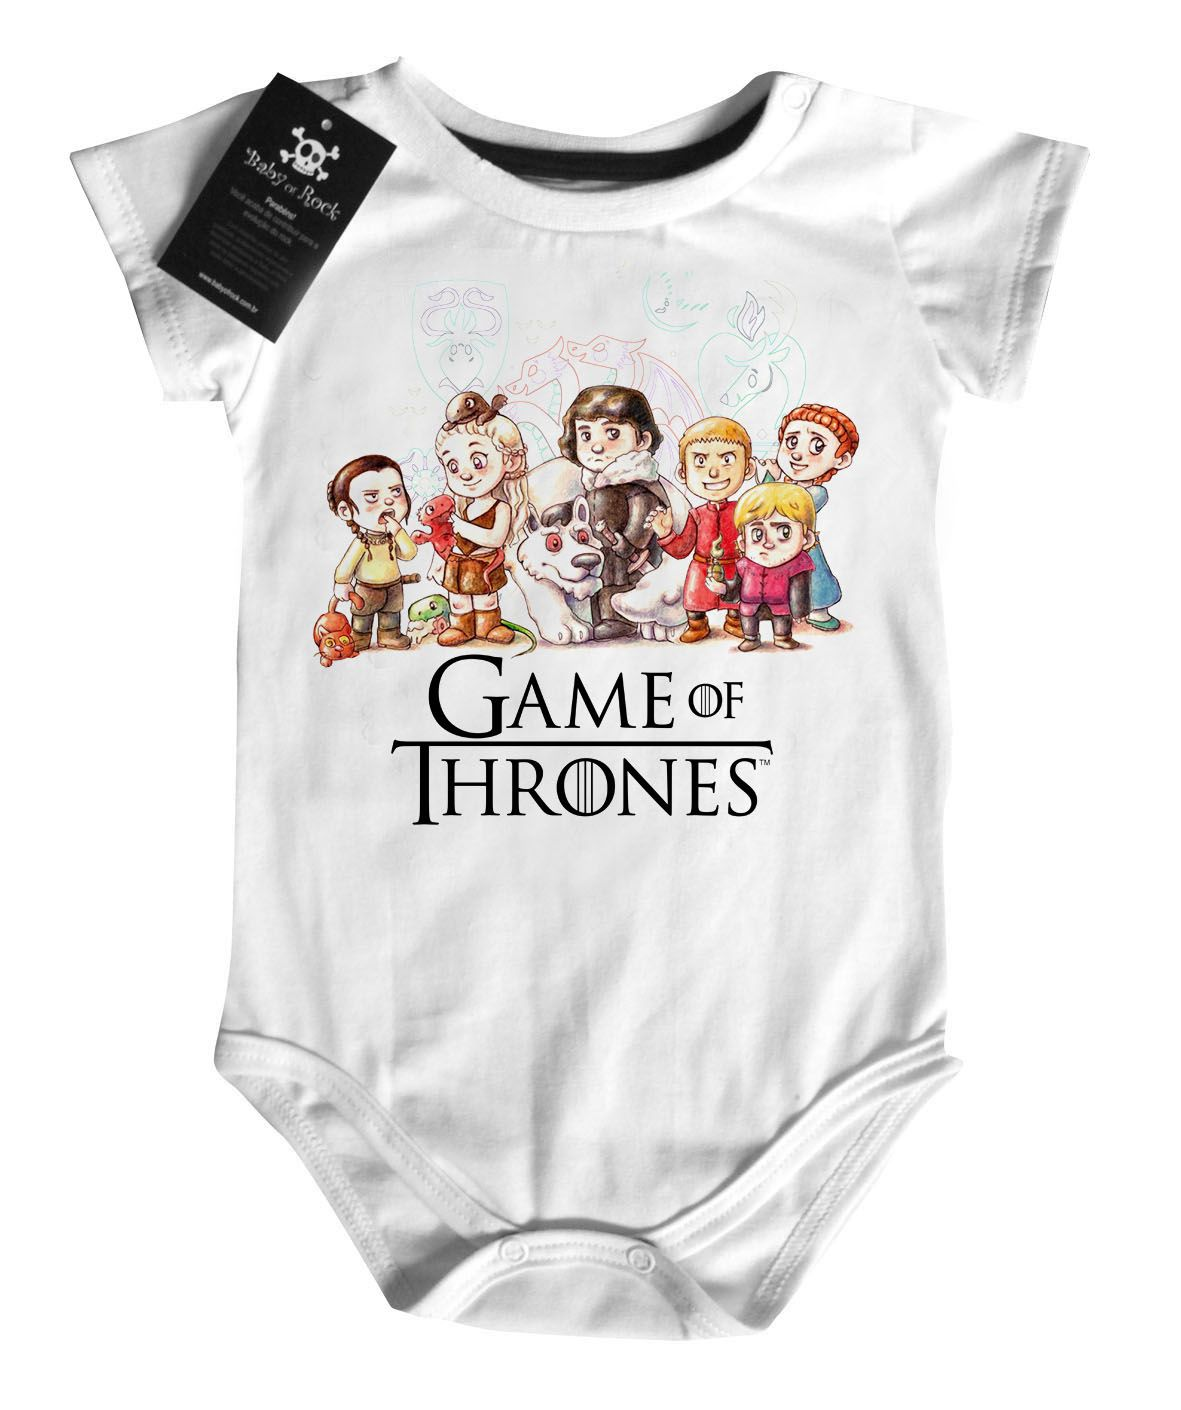 Body Bebê - Filmes - Game of Thrones - Aquarela White  - Baby Monster S/A